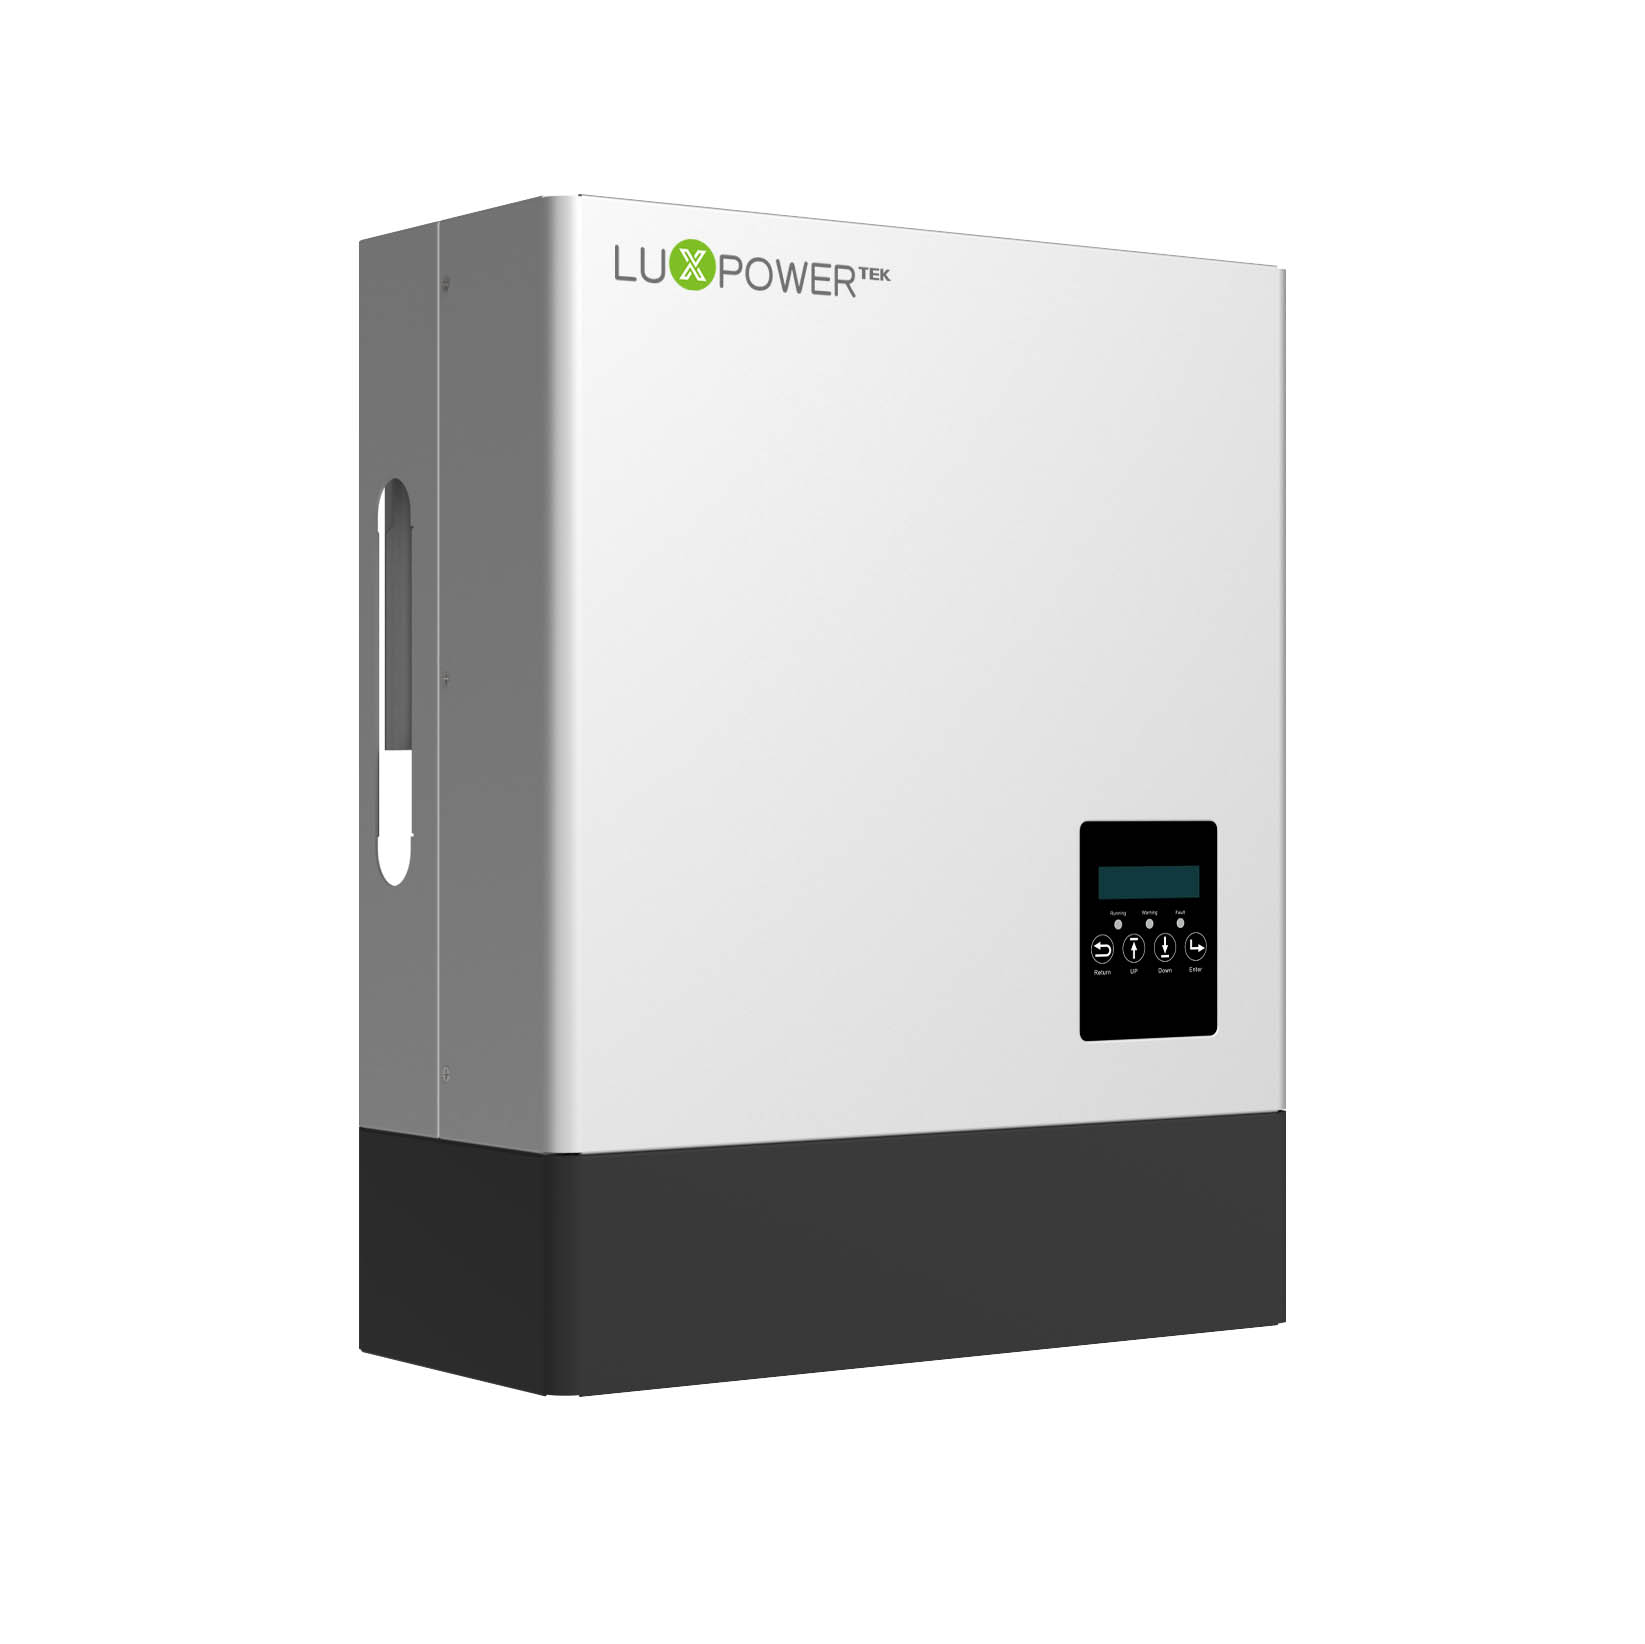 100% Original Factory Lxp3k - Hybrid-LV – LUX POWER